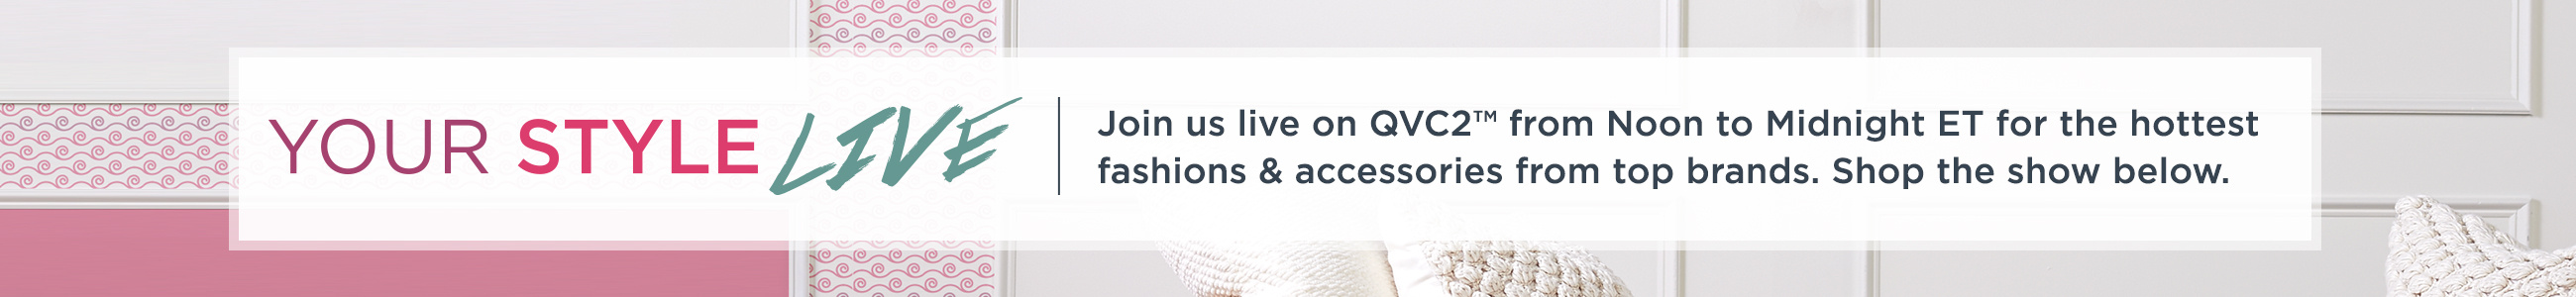 Your Style Live.  Join us live on QVC2™ from Noon to Midnight ET for the hottest fashions & accessories from top brands. Shop the show below.